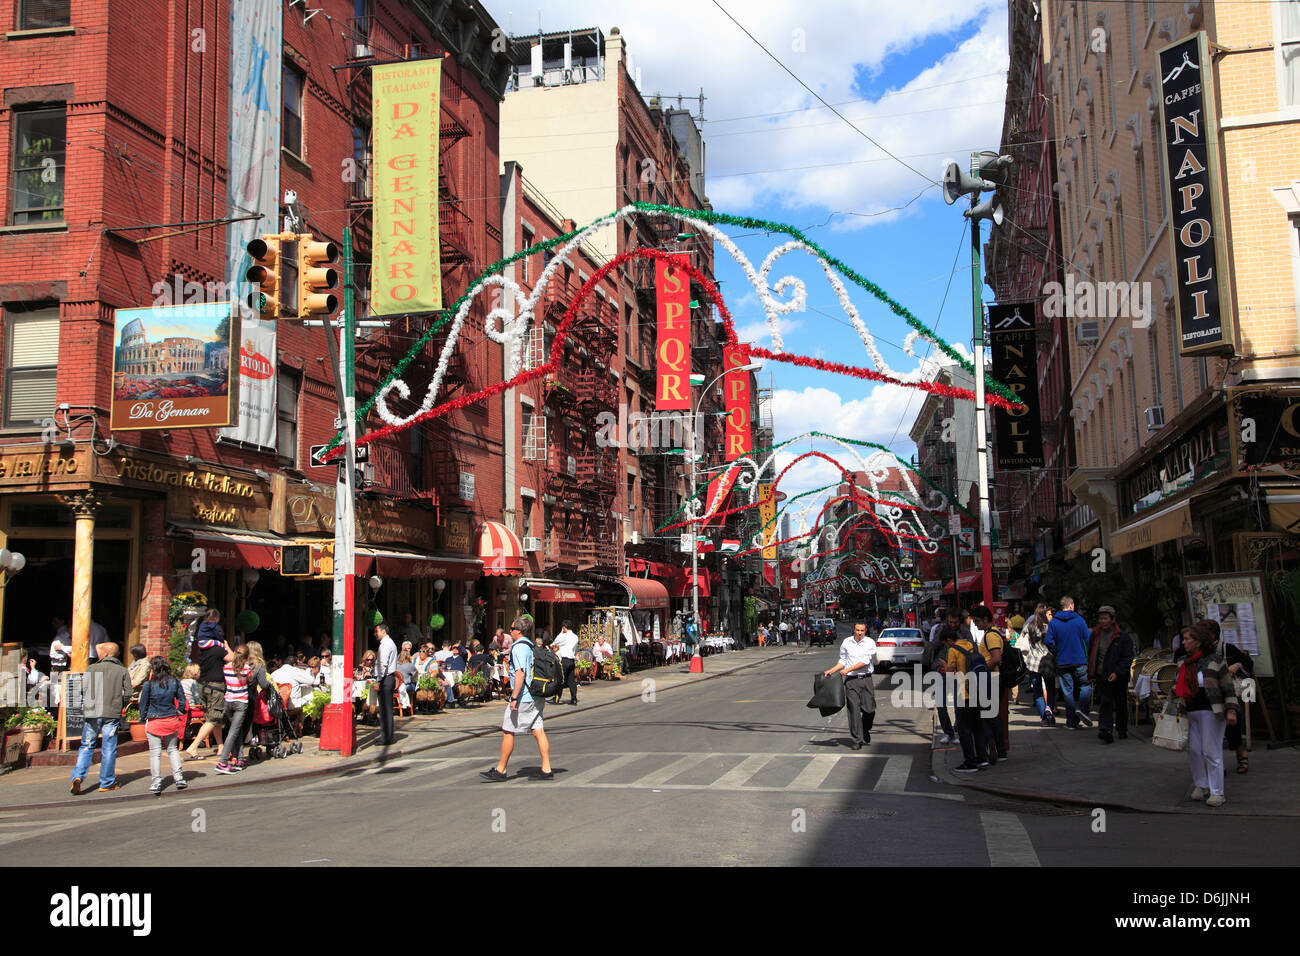 mulberry street  Mulberry Street, Little Italy, Manhattan, New York City, United ...